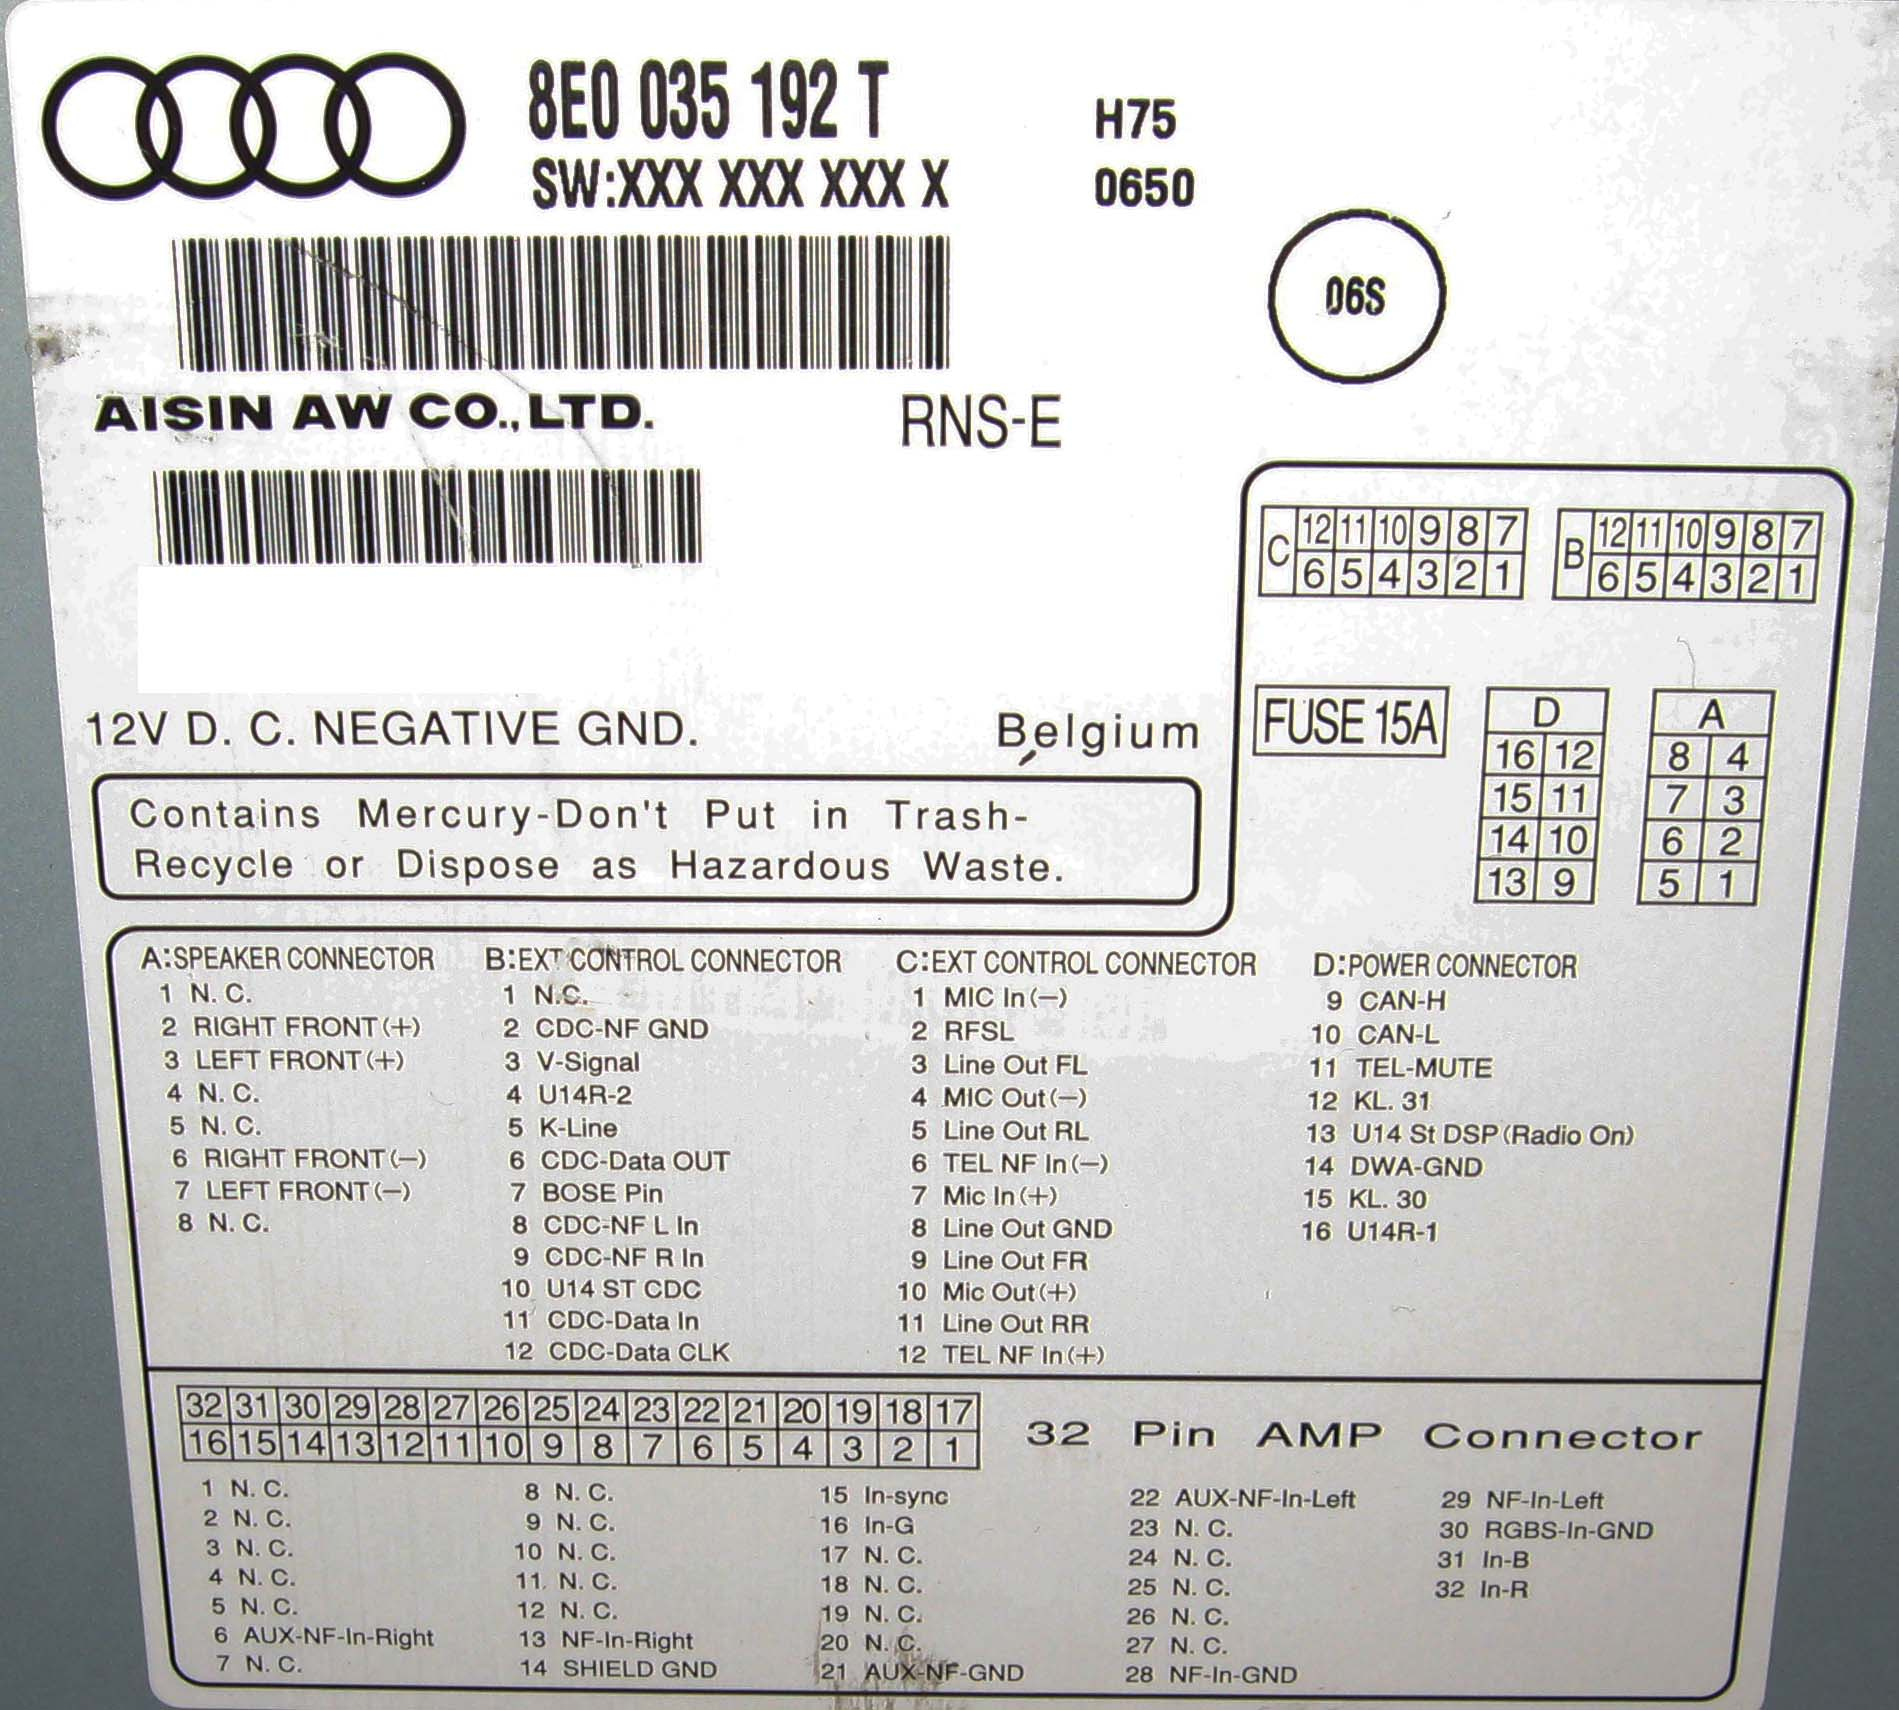 audi rns-e navigation to aftermarket amp, Wiring diagram